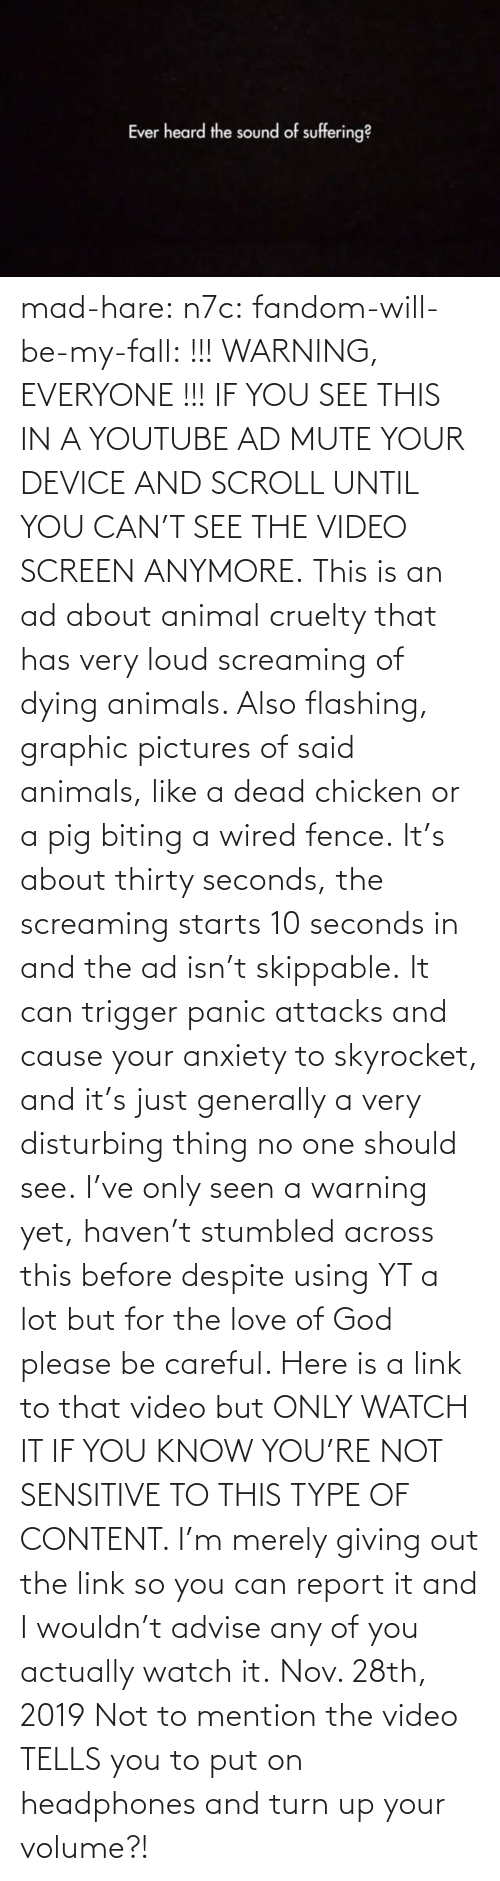 Link: mad-hare: n7c:  fandom-will-be-my-fall:   !!! WARNING, EVERYONE !!! IF YOU SEE THIS IN A YOUTUBE AD MUTE YOUR DEVICE AND SCROLL UNTIL YOU CAN'T SEE THE VIDEO SCREEN ANYMORE. This is an ad about animal cruelty that has very loud screaming of dying animals. Also flashing, graphic pictures of said animals, like a dead chicken or a pig biting a wired fence. It's about thirty seconds, the screaming starts 10 seconds in and the ad isn't skippable. It can trigger panic attacks and cause your anxiety to skyrocket, and it's just generally a very disturbing thing no one should see. I've only seen a warning yet, haven't stumbled across this before despite using YT a lot but for the love of God please be careful. Here is a link to that video but ONLY WATCH IT IF YOU KNOW YOU'RE NOT SENSITIVE TO THIS TYPE OF CONTENT. I'm merely giving out the link so you can report it and I wouldn't advise any of you actually watch it.   Nov. 28th, 2019  Not to mention the video TELLS you to put on headphones and turn up your volume?!